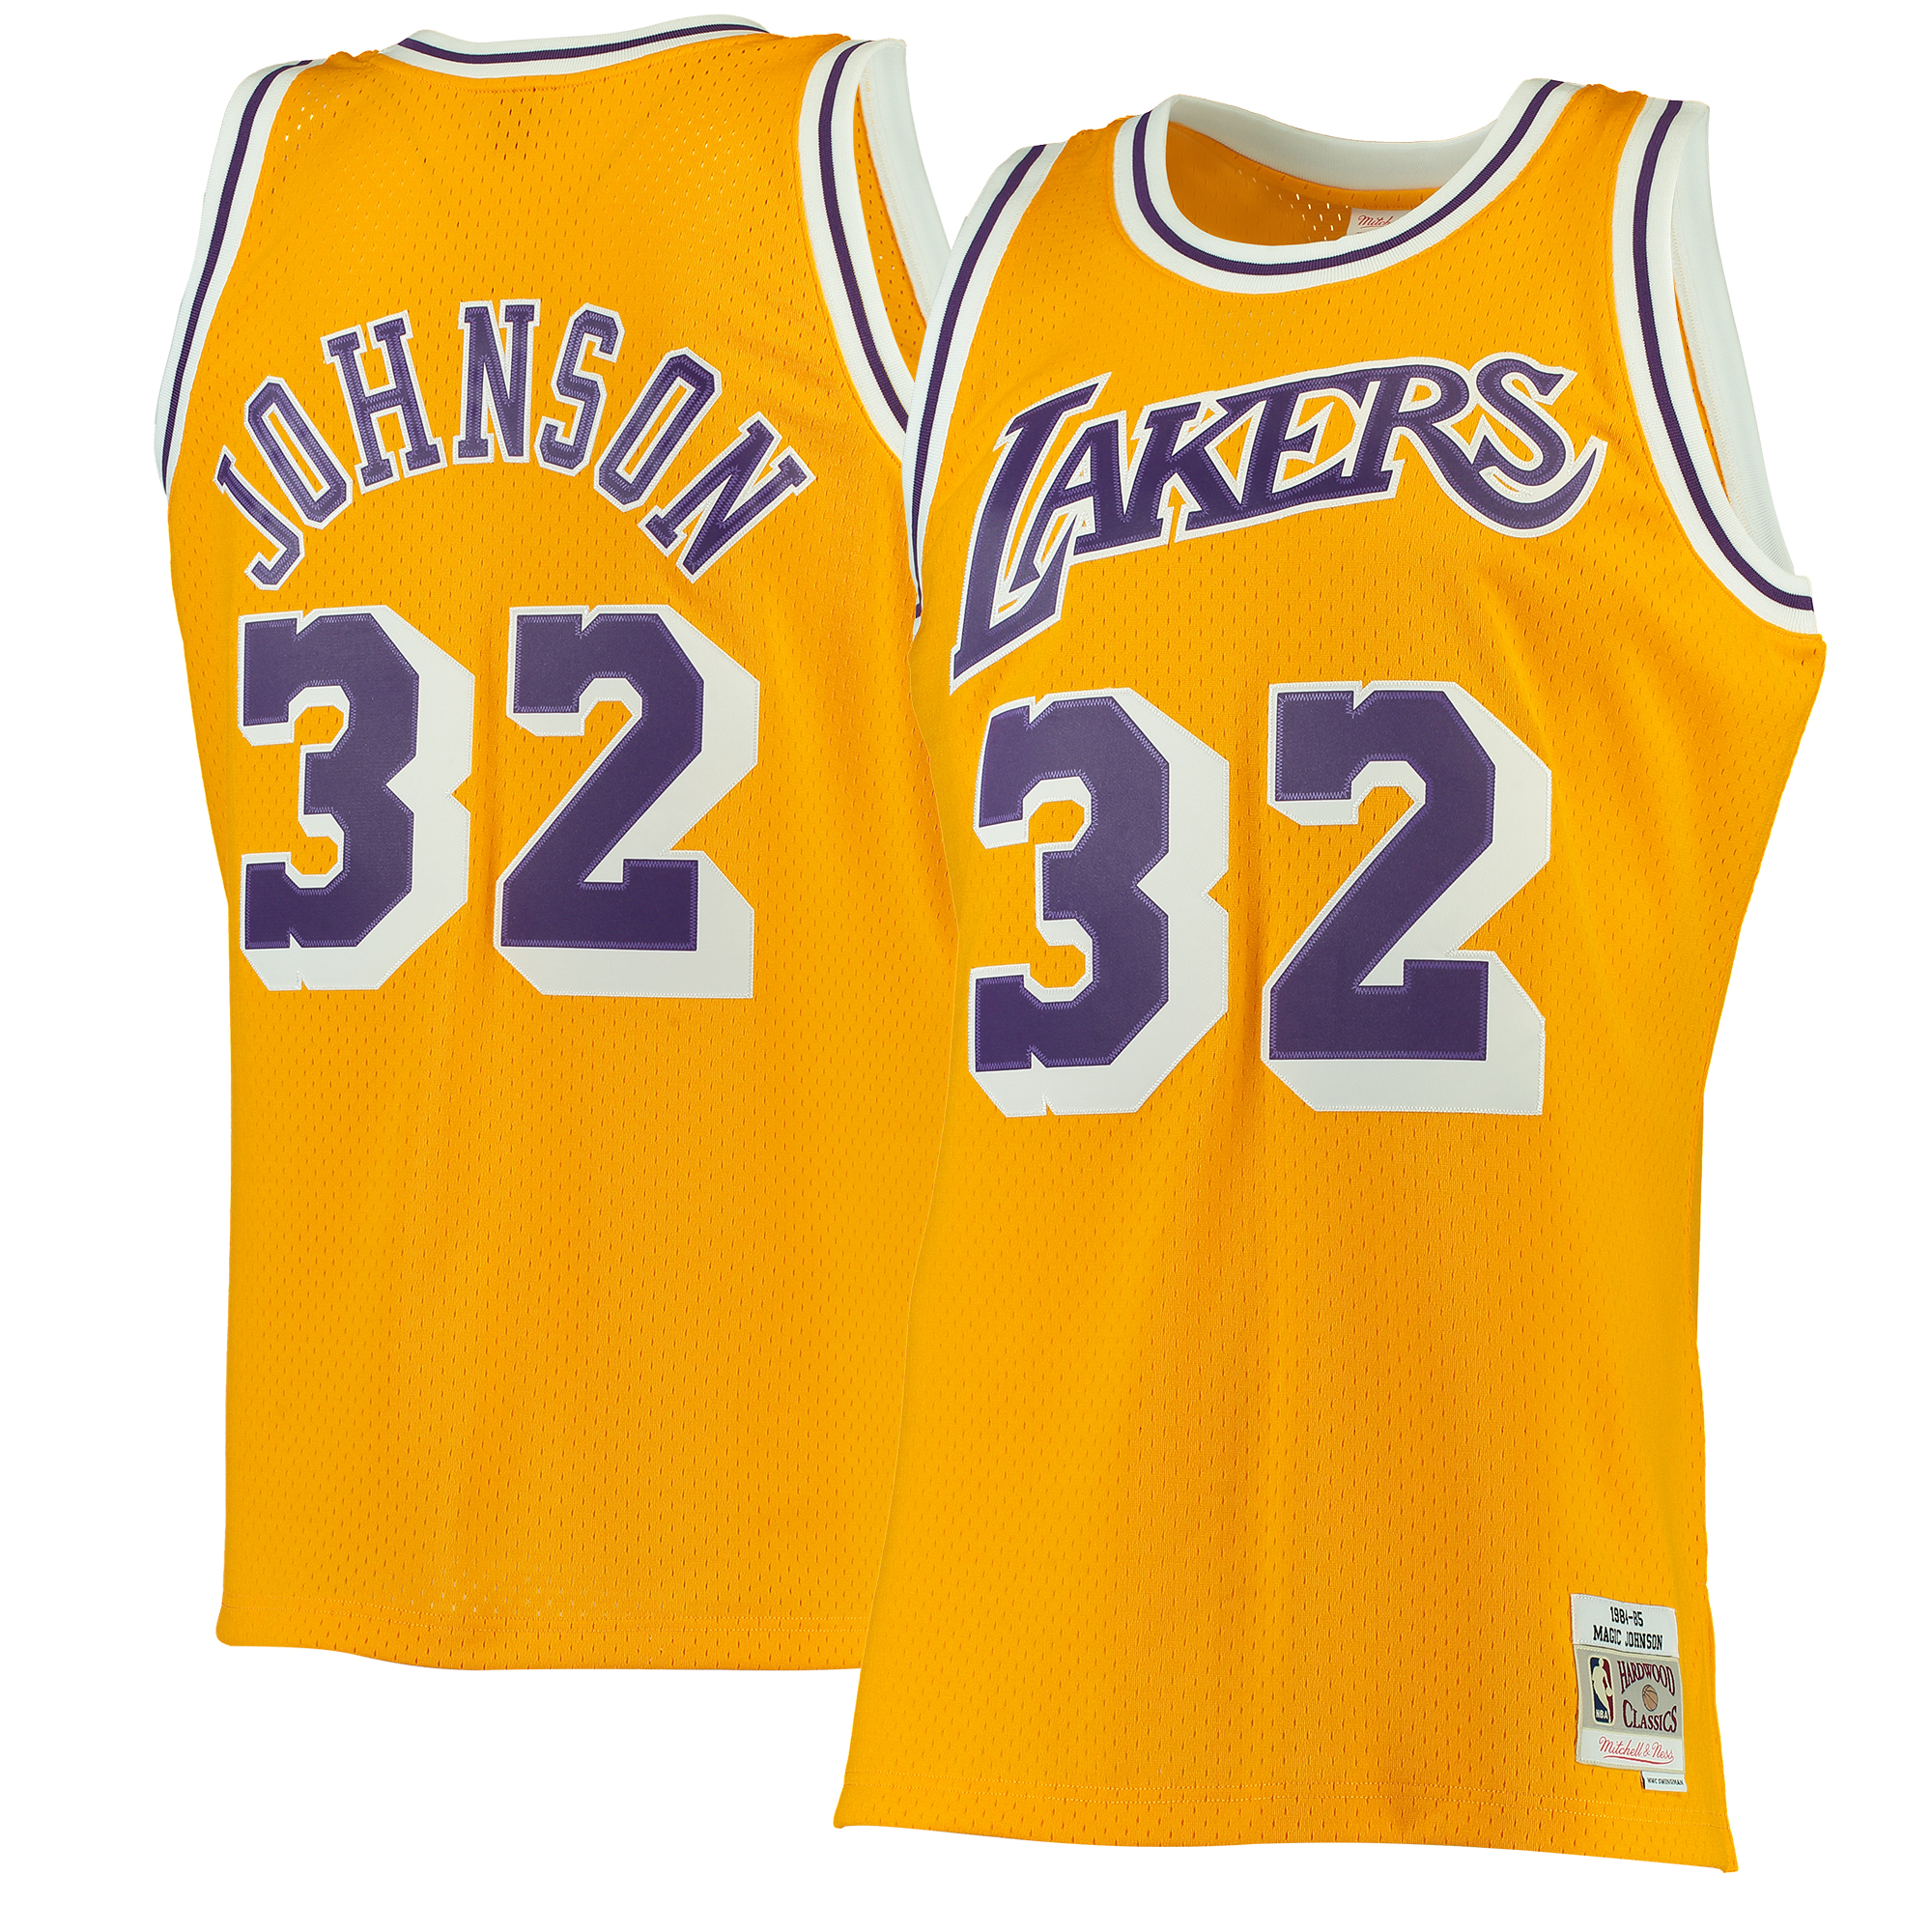 0aeb37eabb7 Sports Fan Shop - Walmart.com